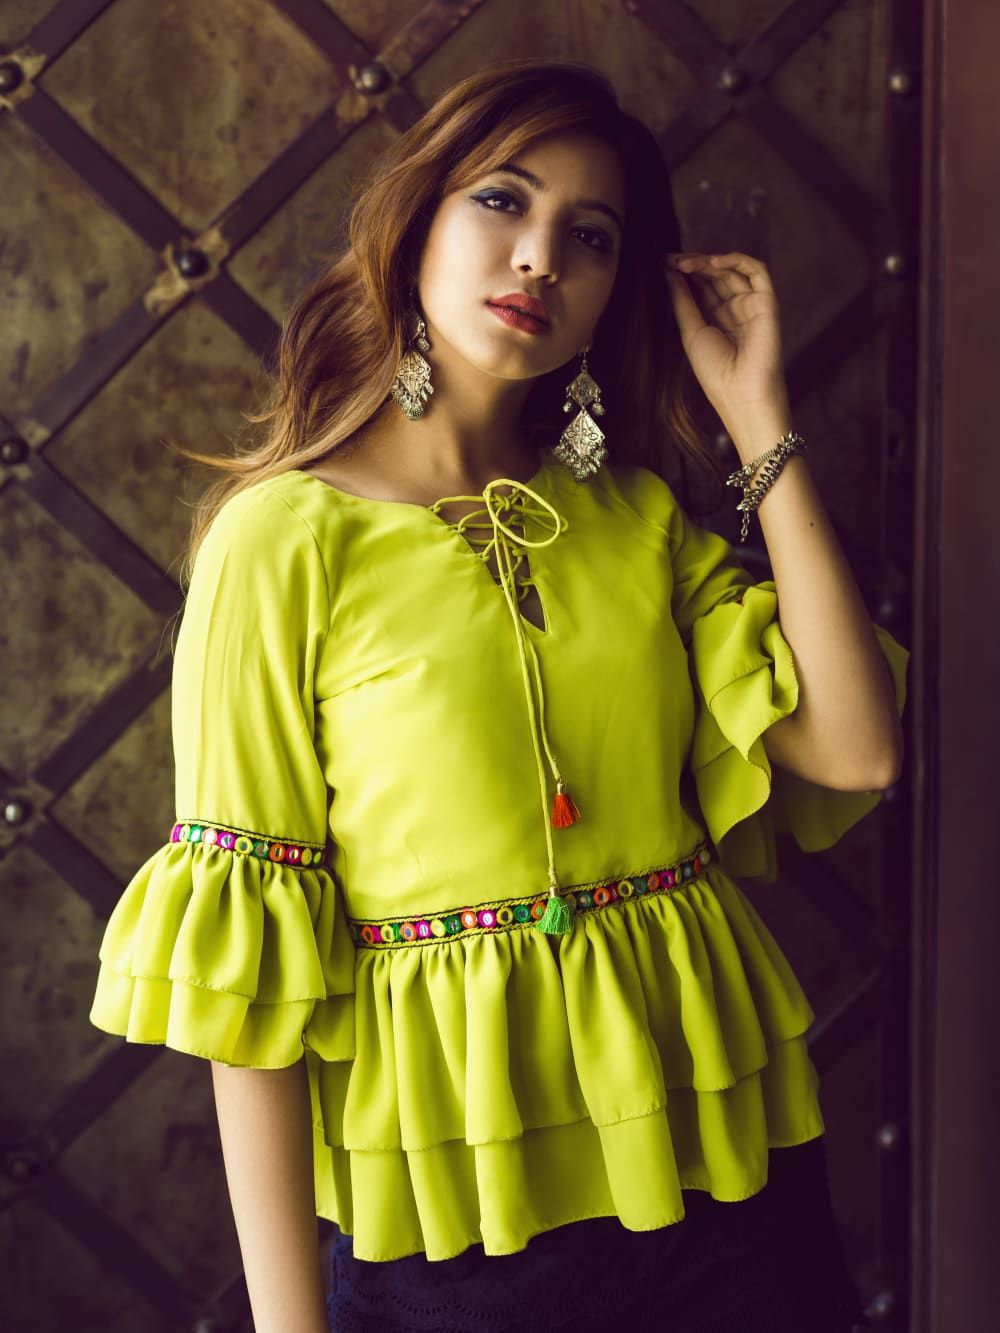 b0c9b736f79b Buy Western Tops for ladies online at cheapest rate in India. Shop long tops,  jeans tops, cotton tops, crop tops, party wear designer tops, off the  shoulder ...